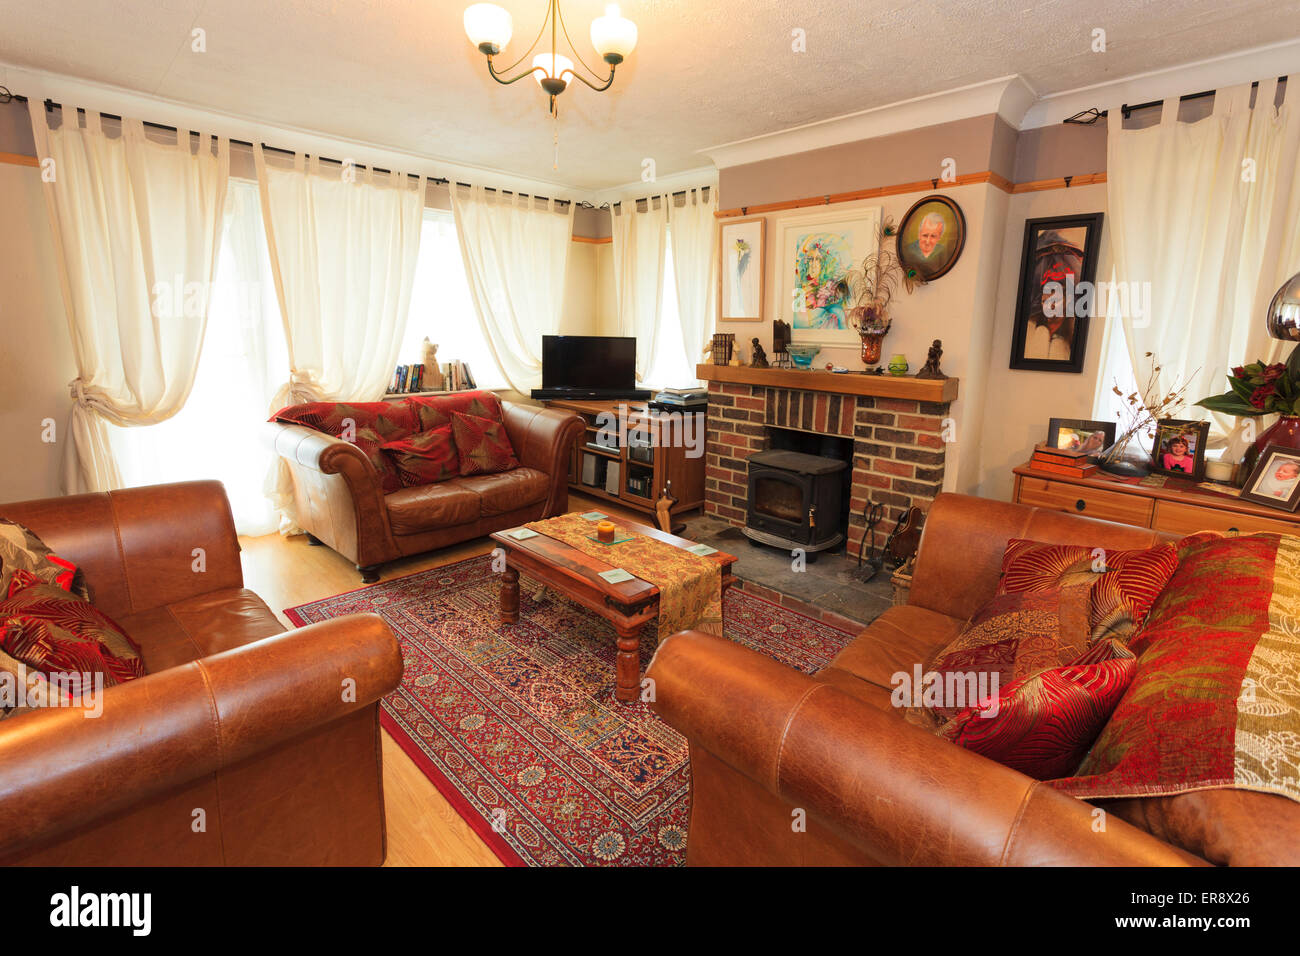 Lounge in english house with three leather sofas and wood burner - Stock Image